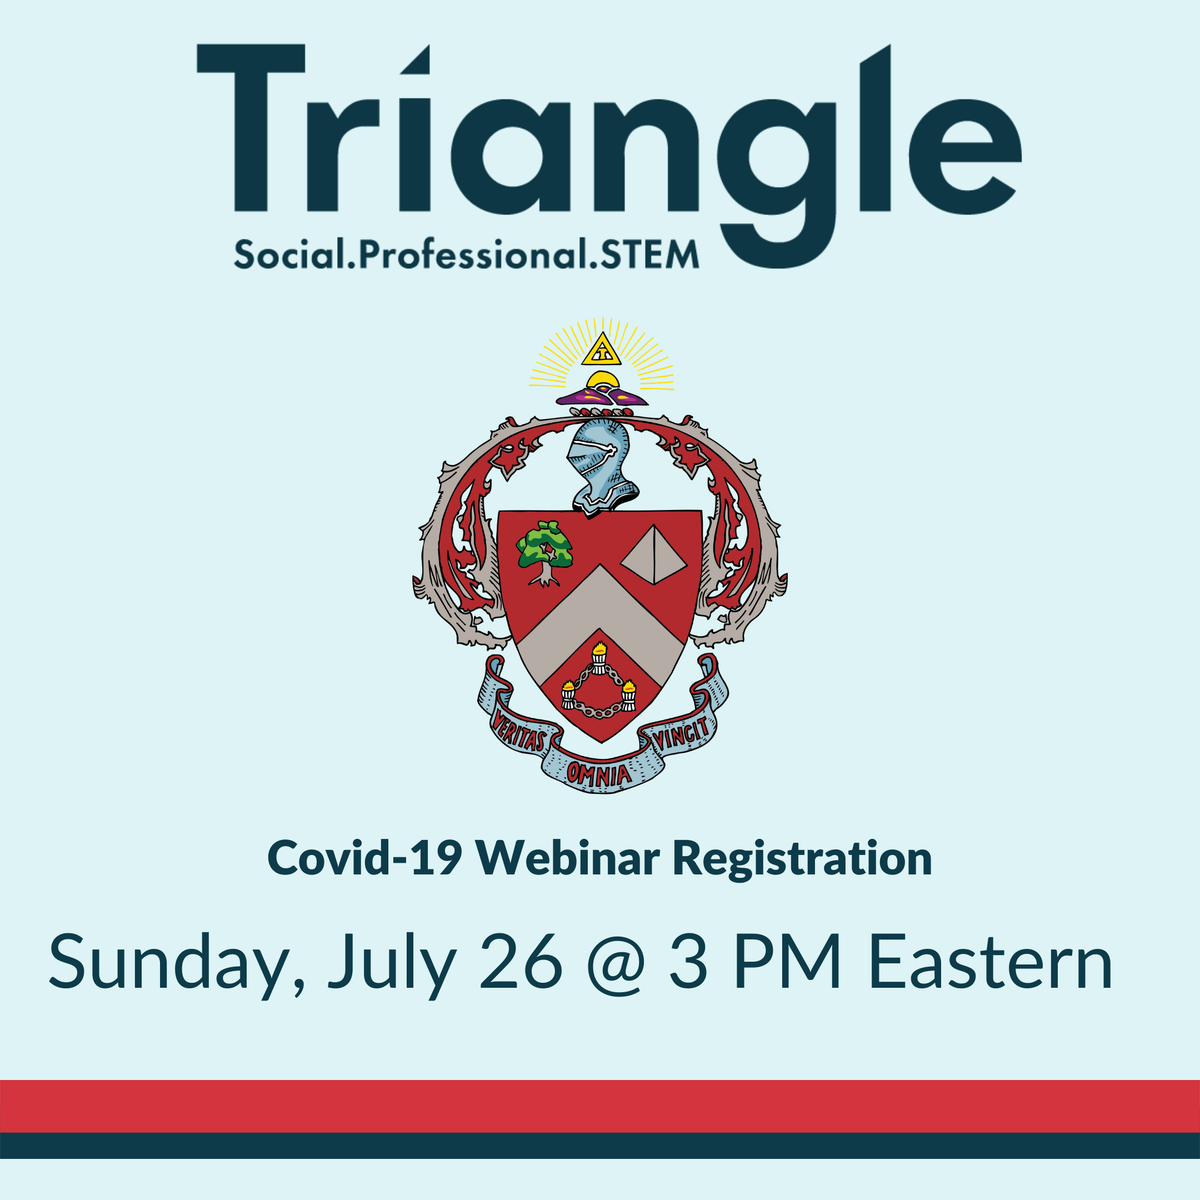 Leading into August, one thing your chapter should do to prepare for fall is to start meeting every two weeks – Exec Board and Alumni Chapter President/Advisor.  We will cover this and more at our Covid-19 webinar on July 26 @ 3 PM EST (Zoom and FB Live): https://t.co/ZVr0mYSOam https://t.co/sS2gzEvxBE